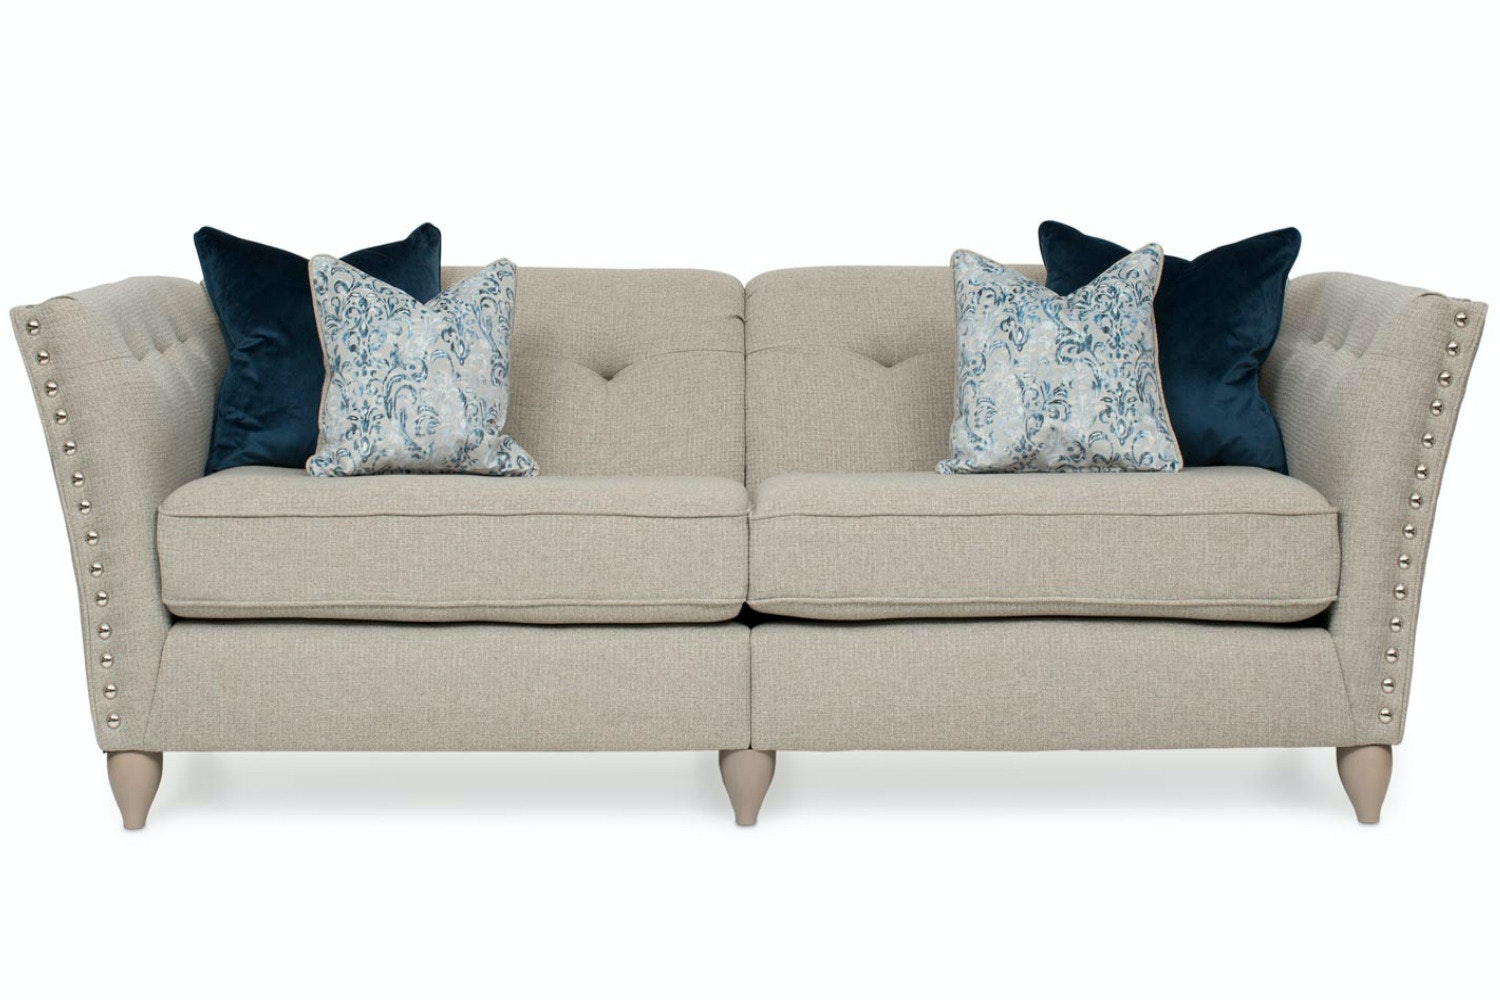 Simba Studded 4 Seater Split Sofa